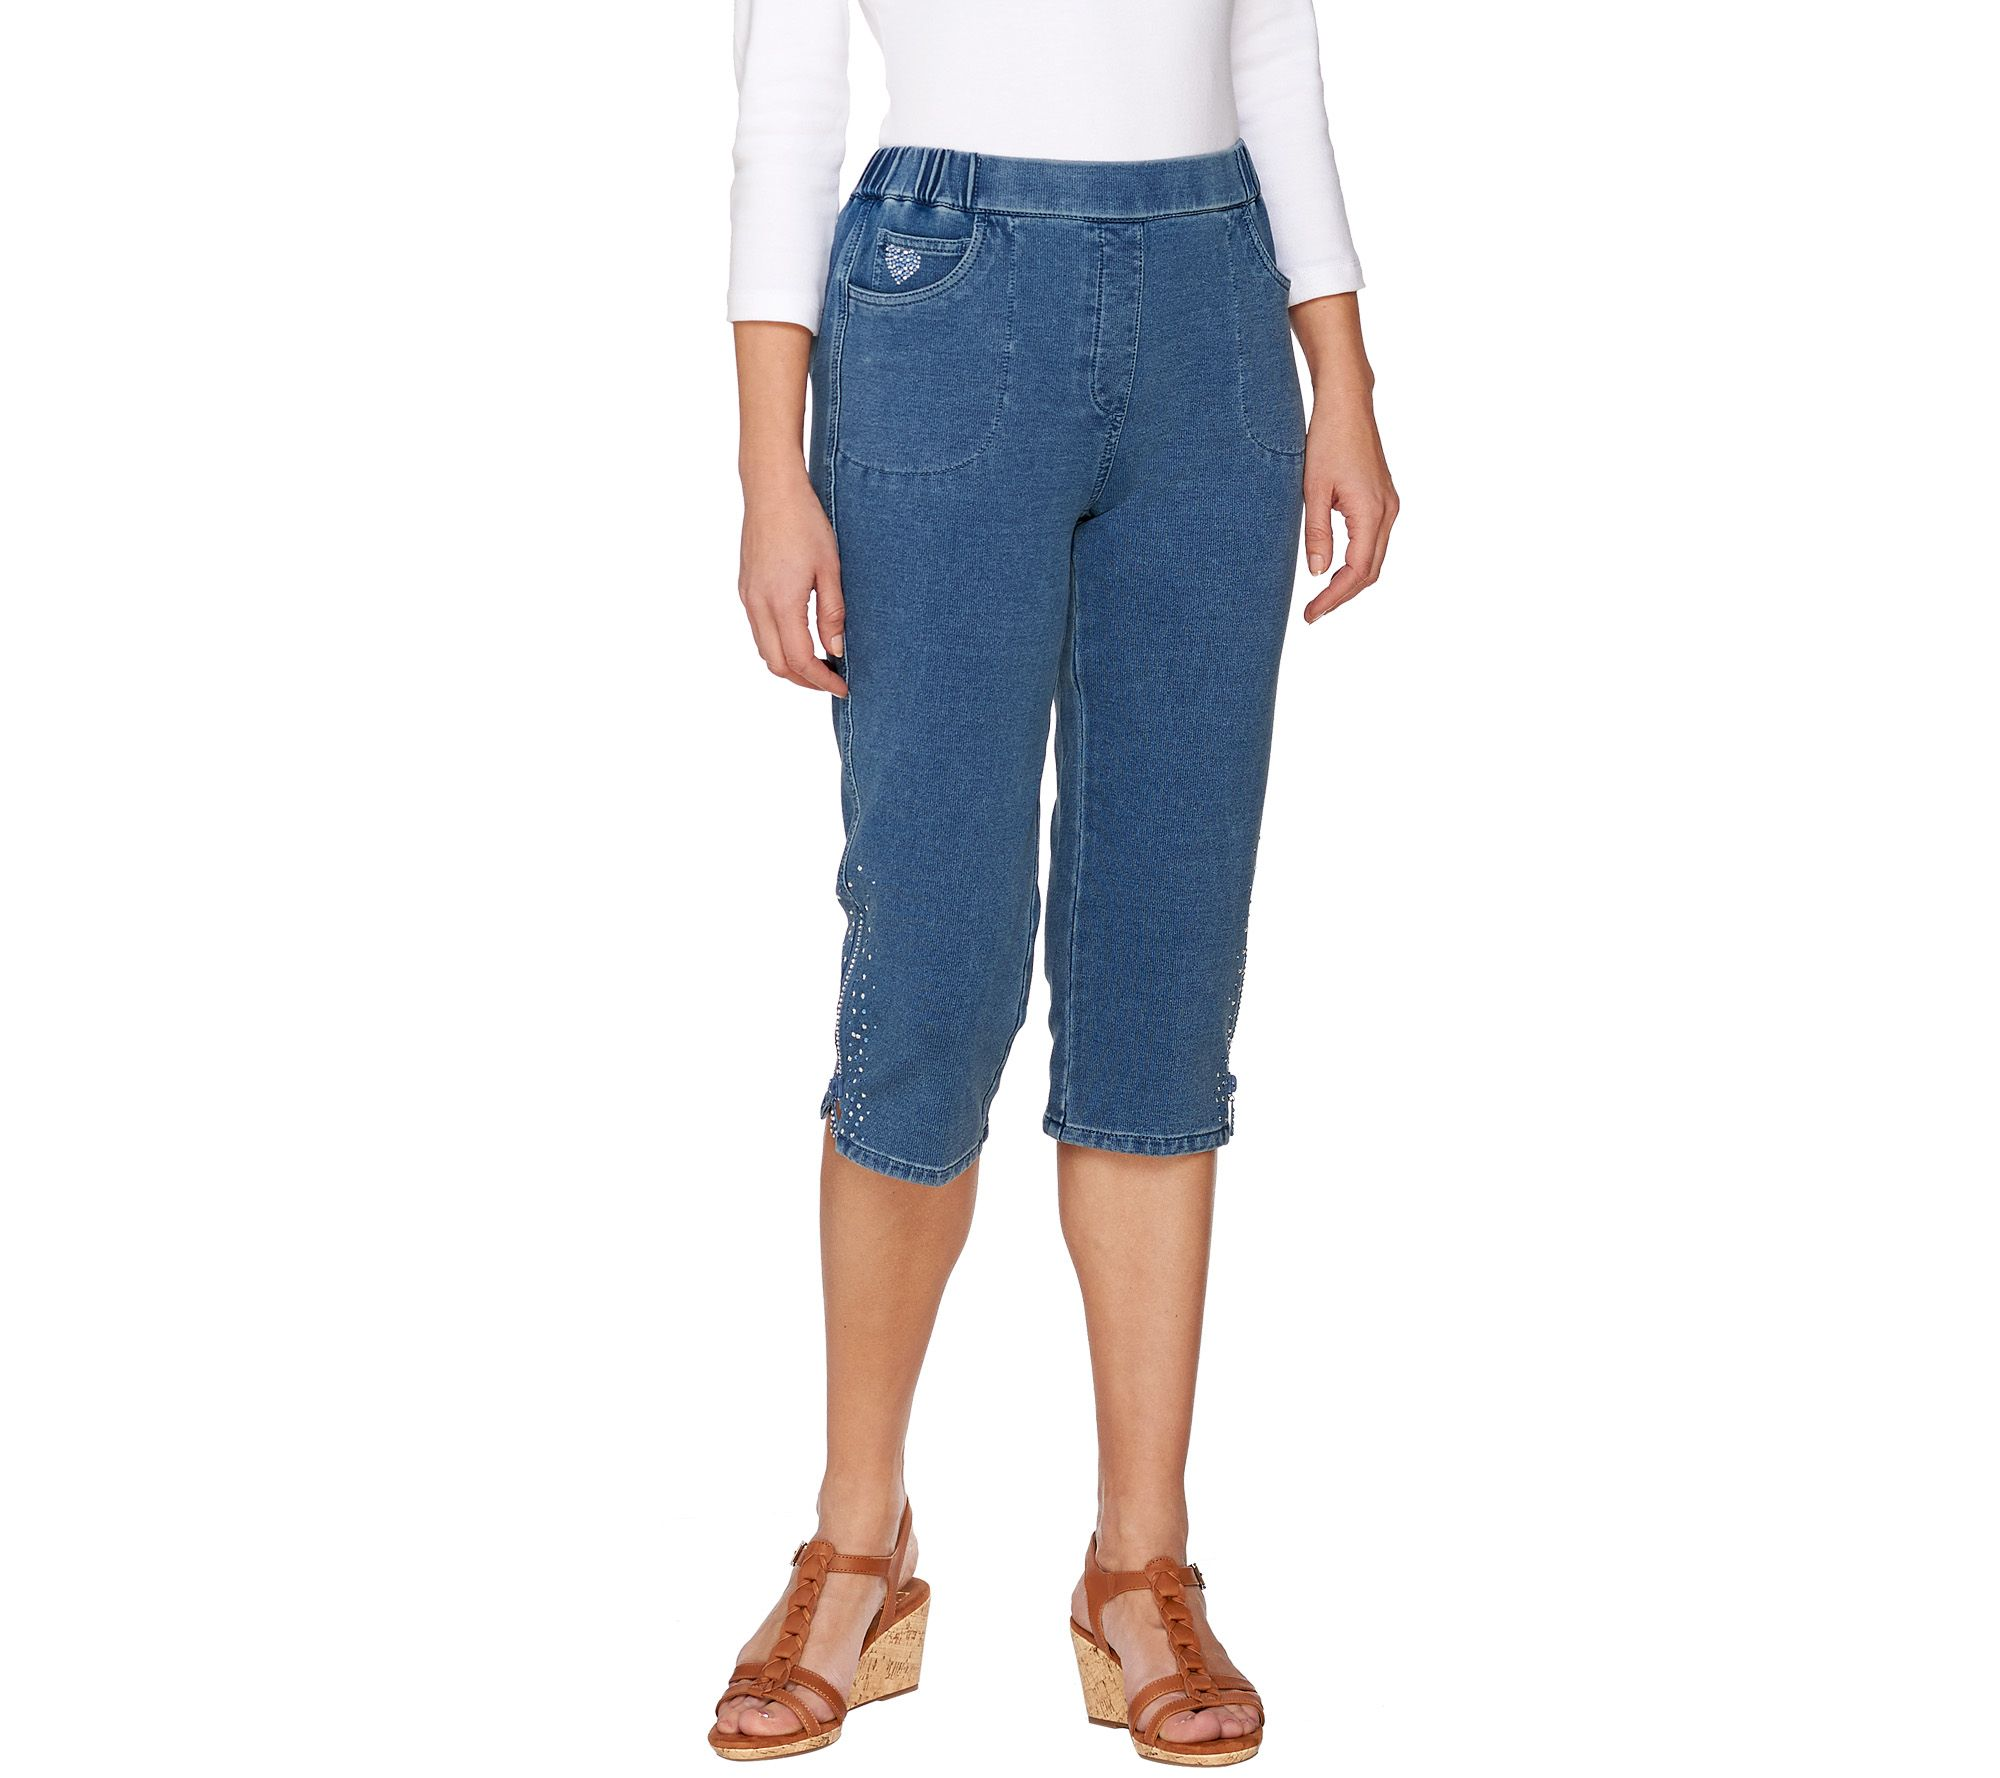 Find capri pants at Macy's Macy's Presents: The Edit - A curated mix of fashion and inspiration Check It Out Free Shipping with $75 purchase + Free Store Pickup.